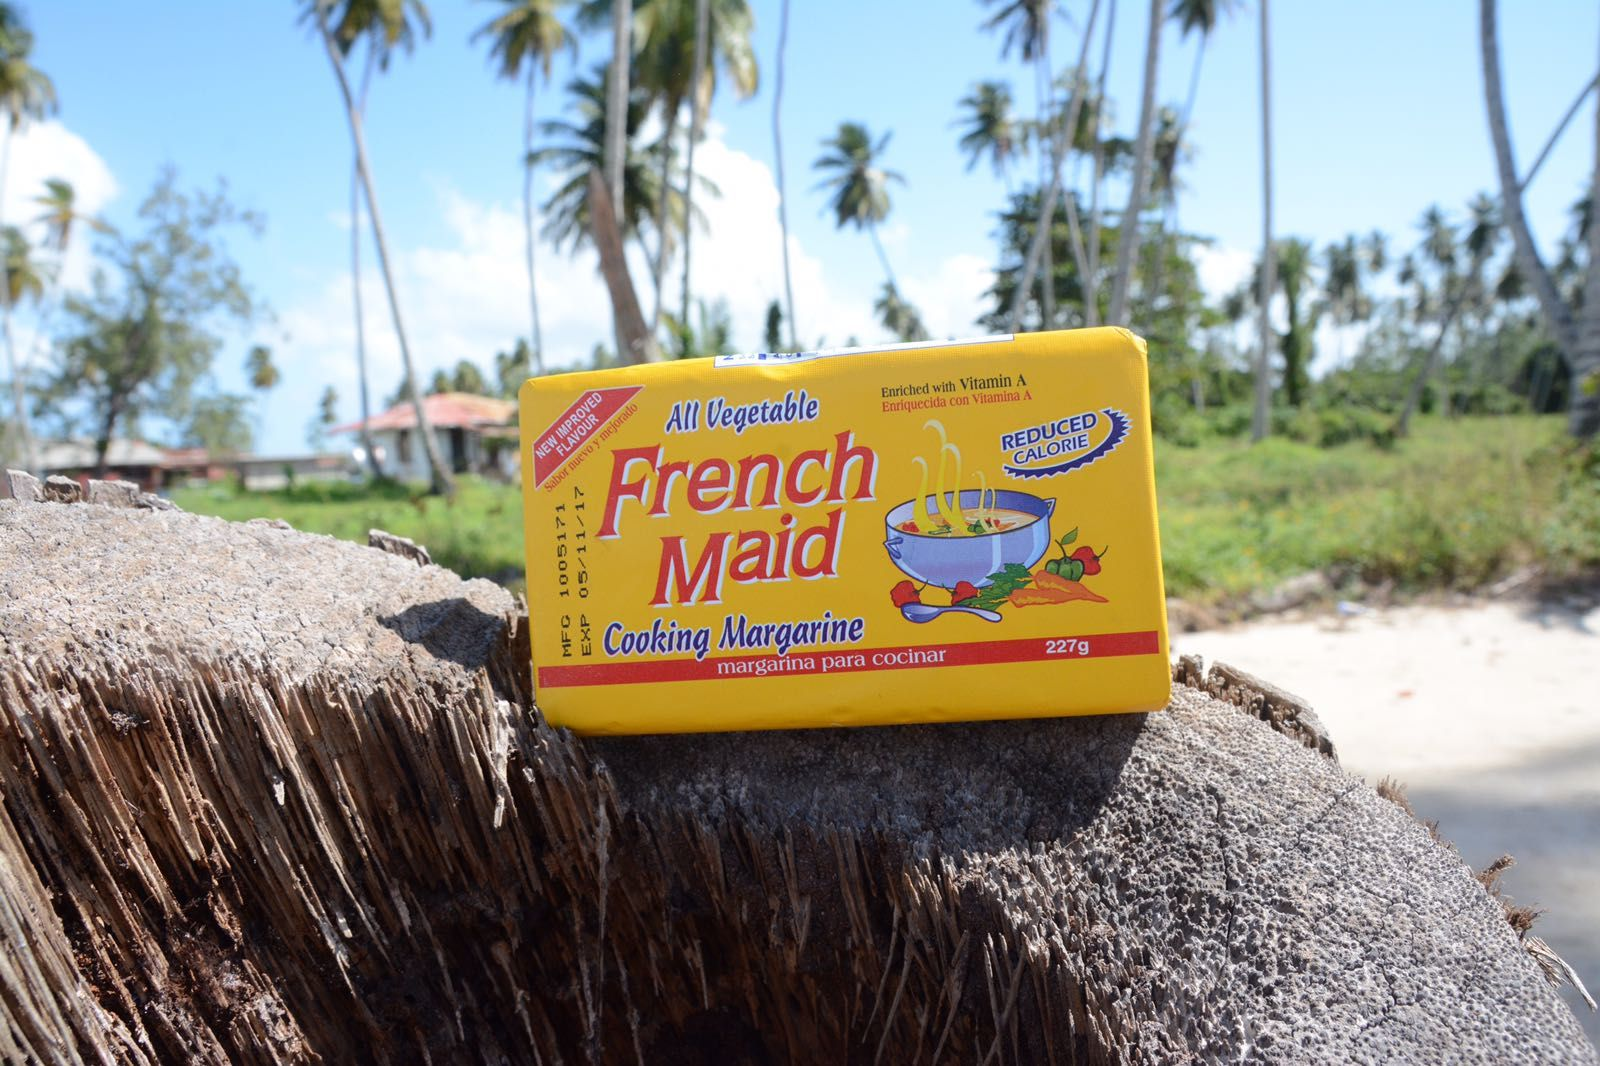 French Maid margarine Trinidad and Tobago (With images